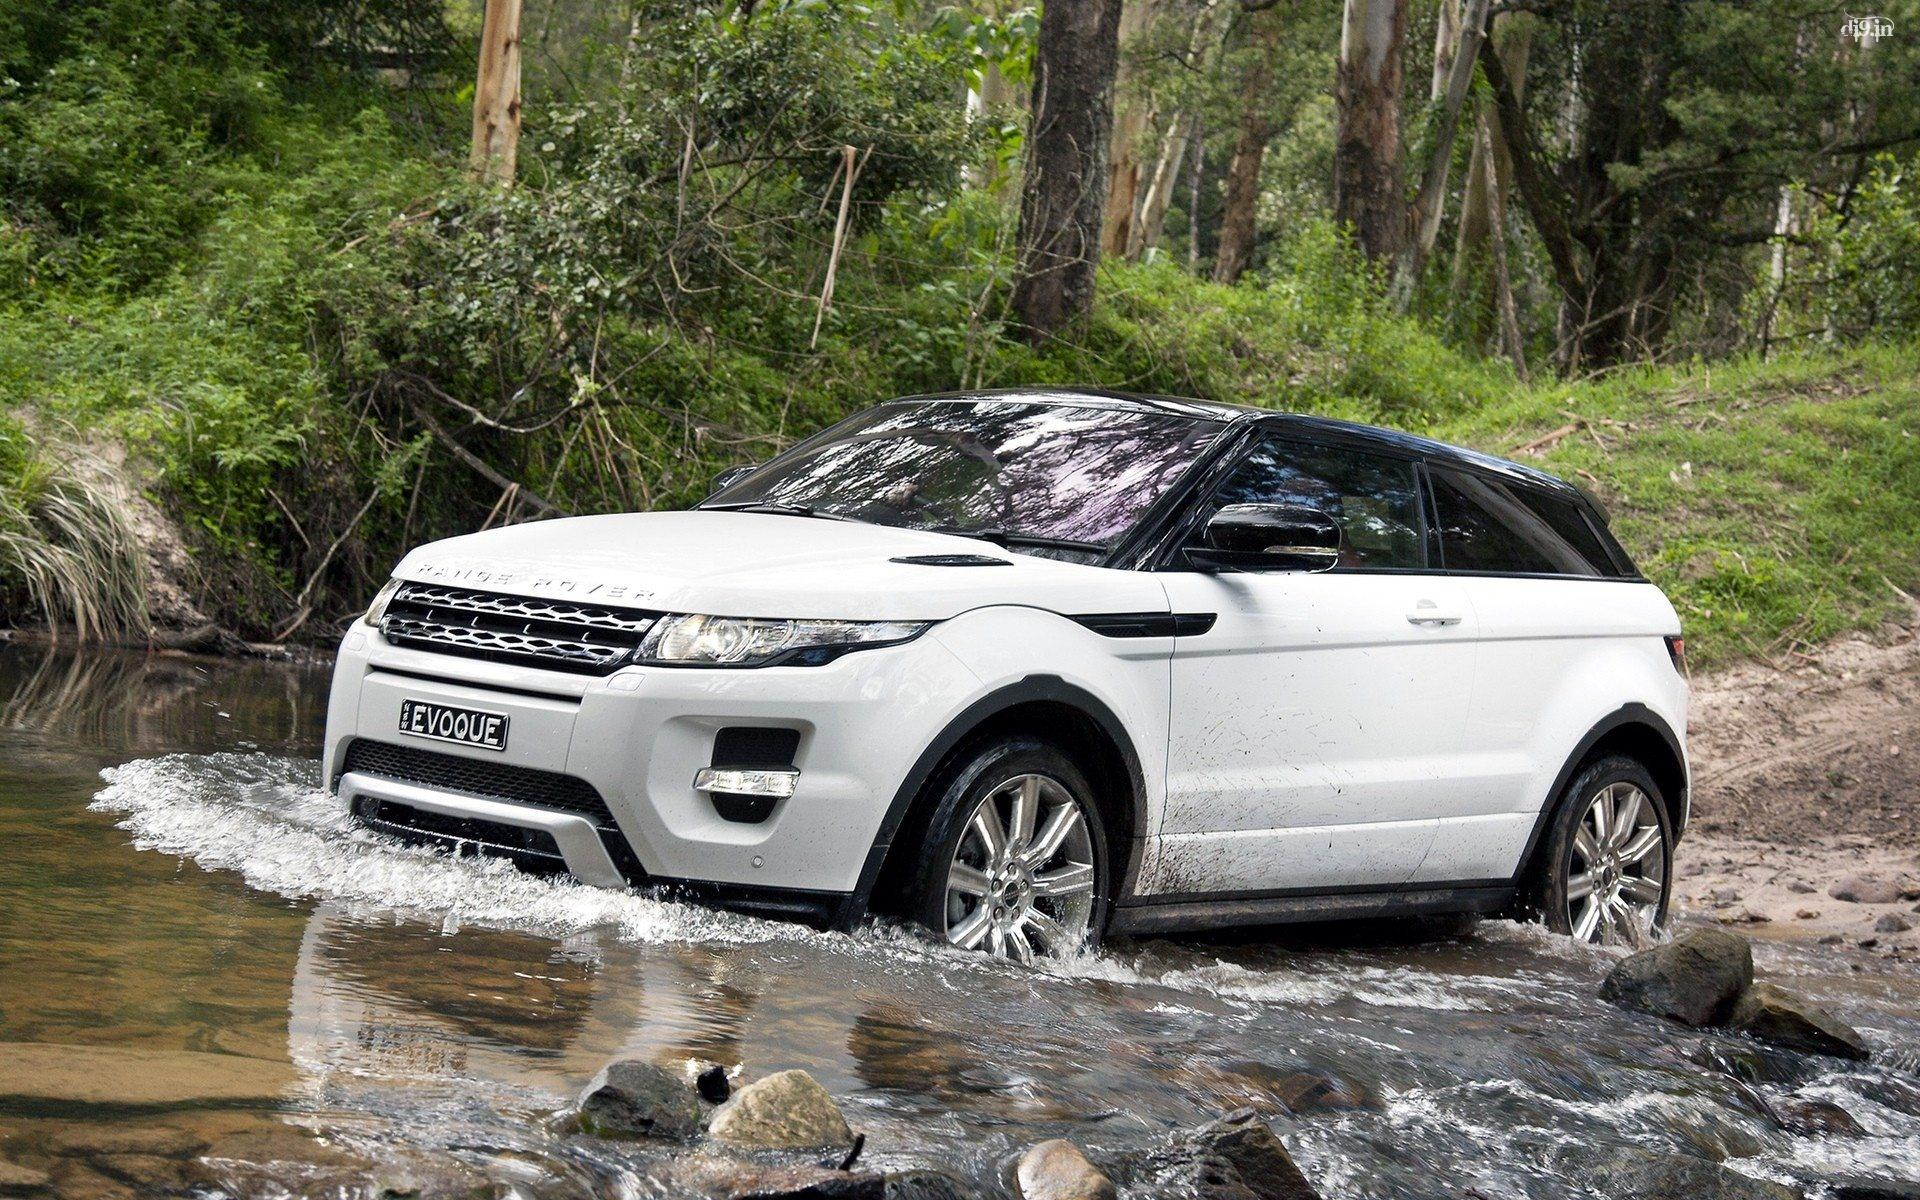 Image result for RANGE ROVER SUV: HD PICS